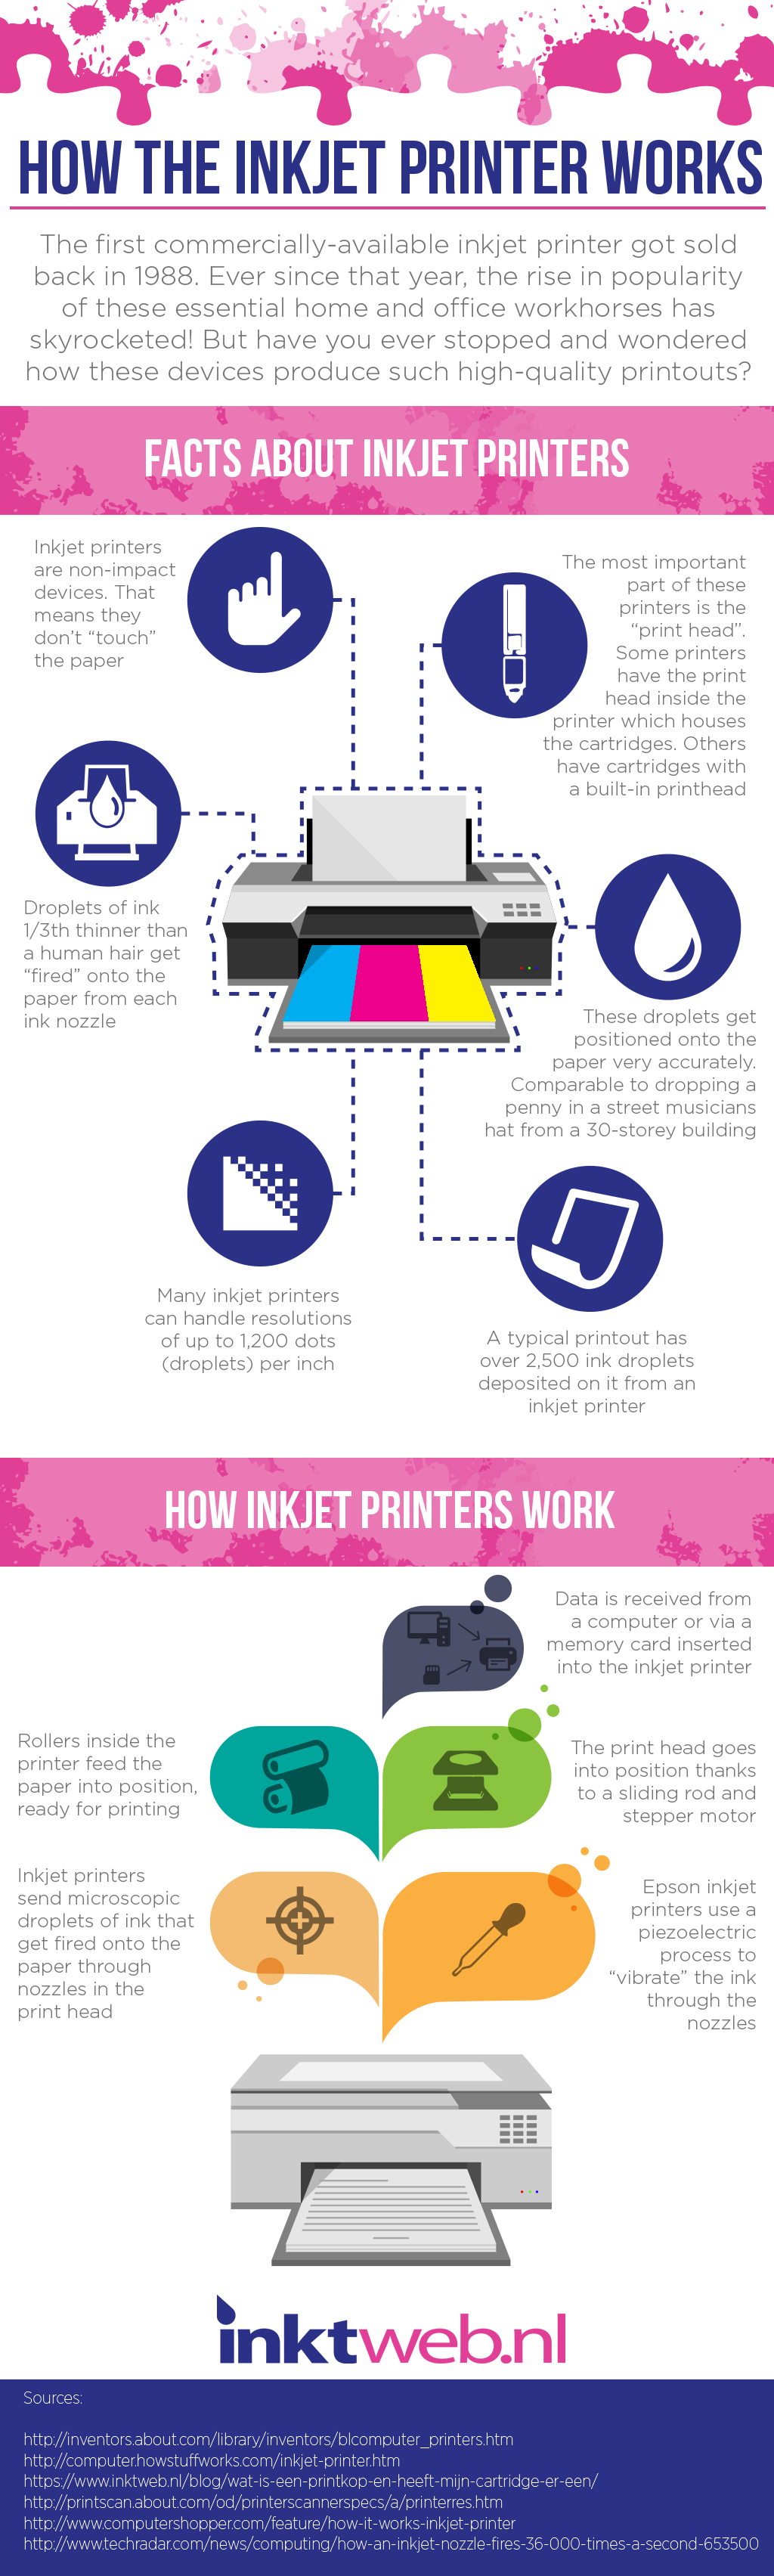 infographic-how-a-printer-works